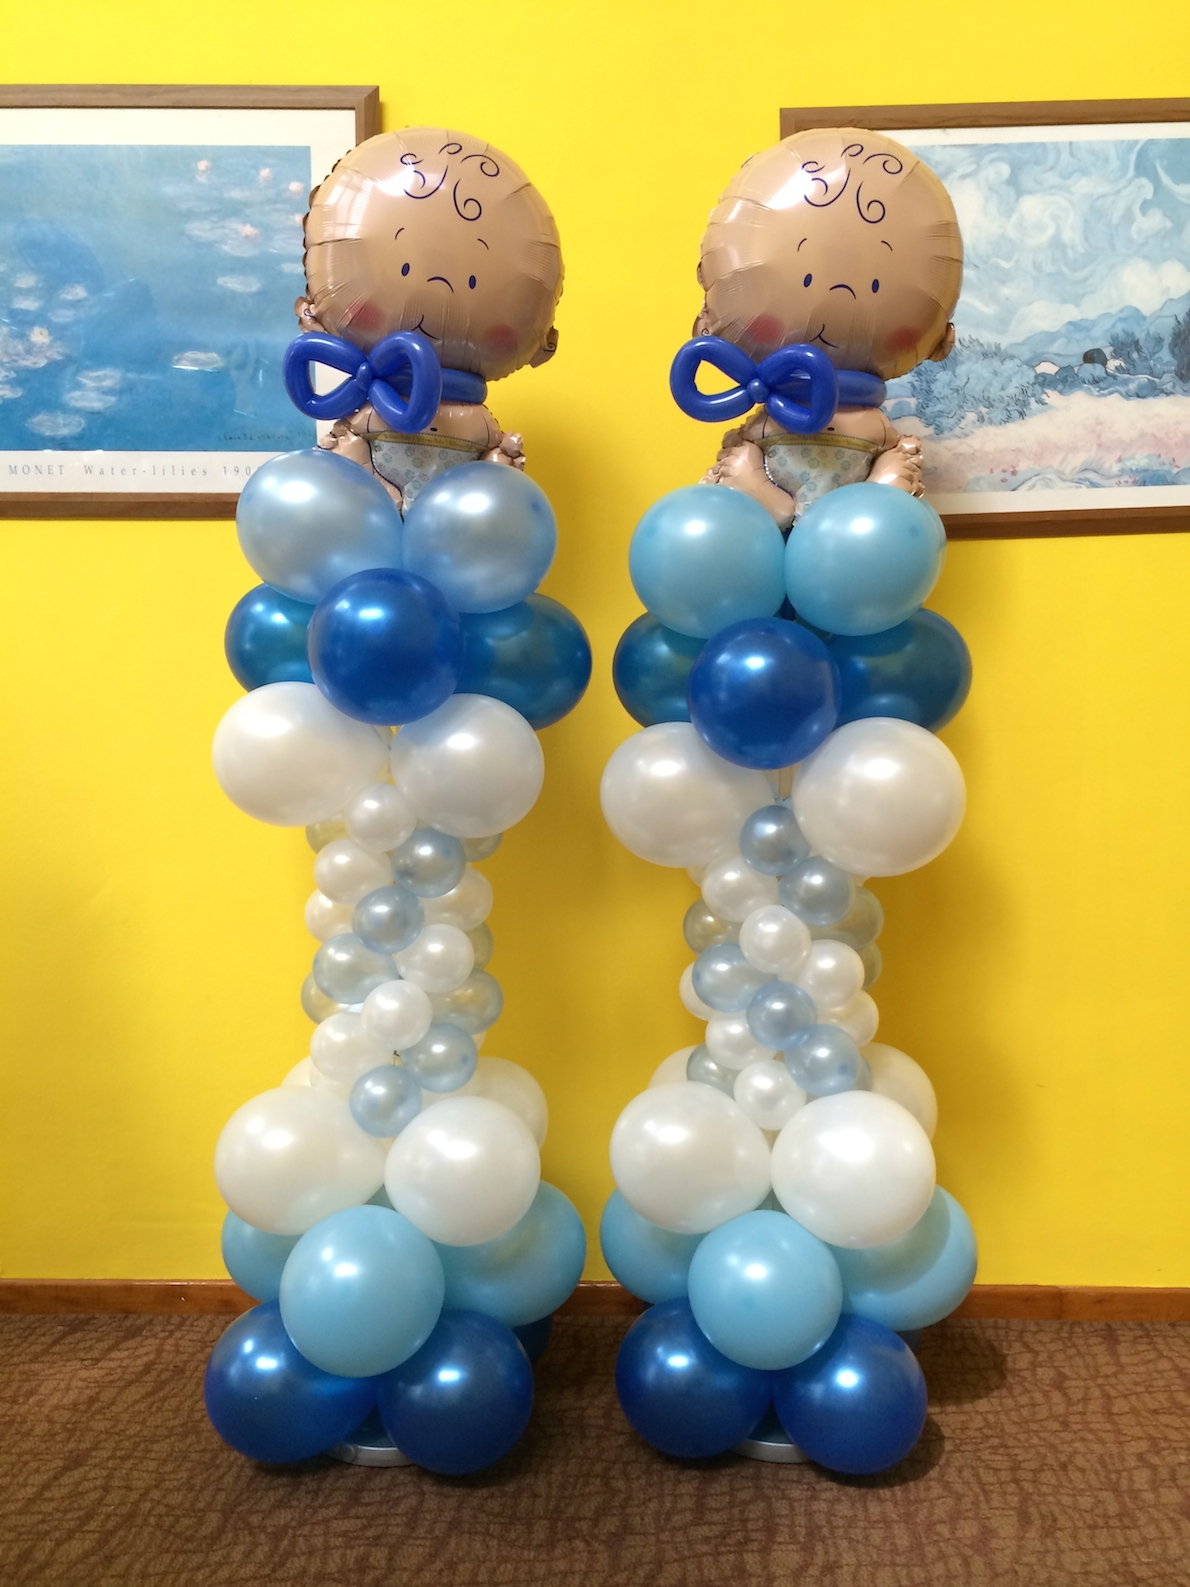 Baby birthday balloon decorations that balloons for Baby birthday decoration